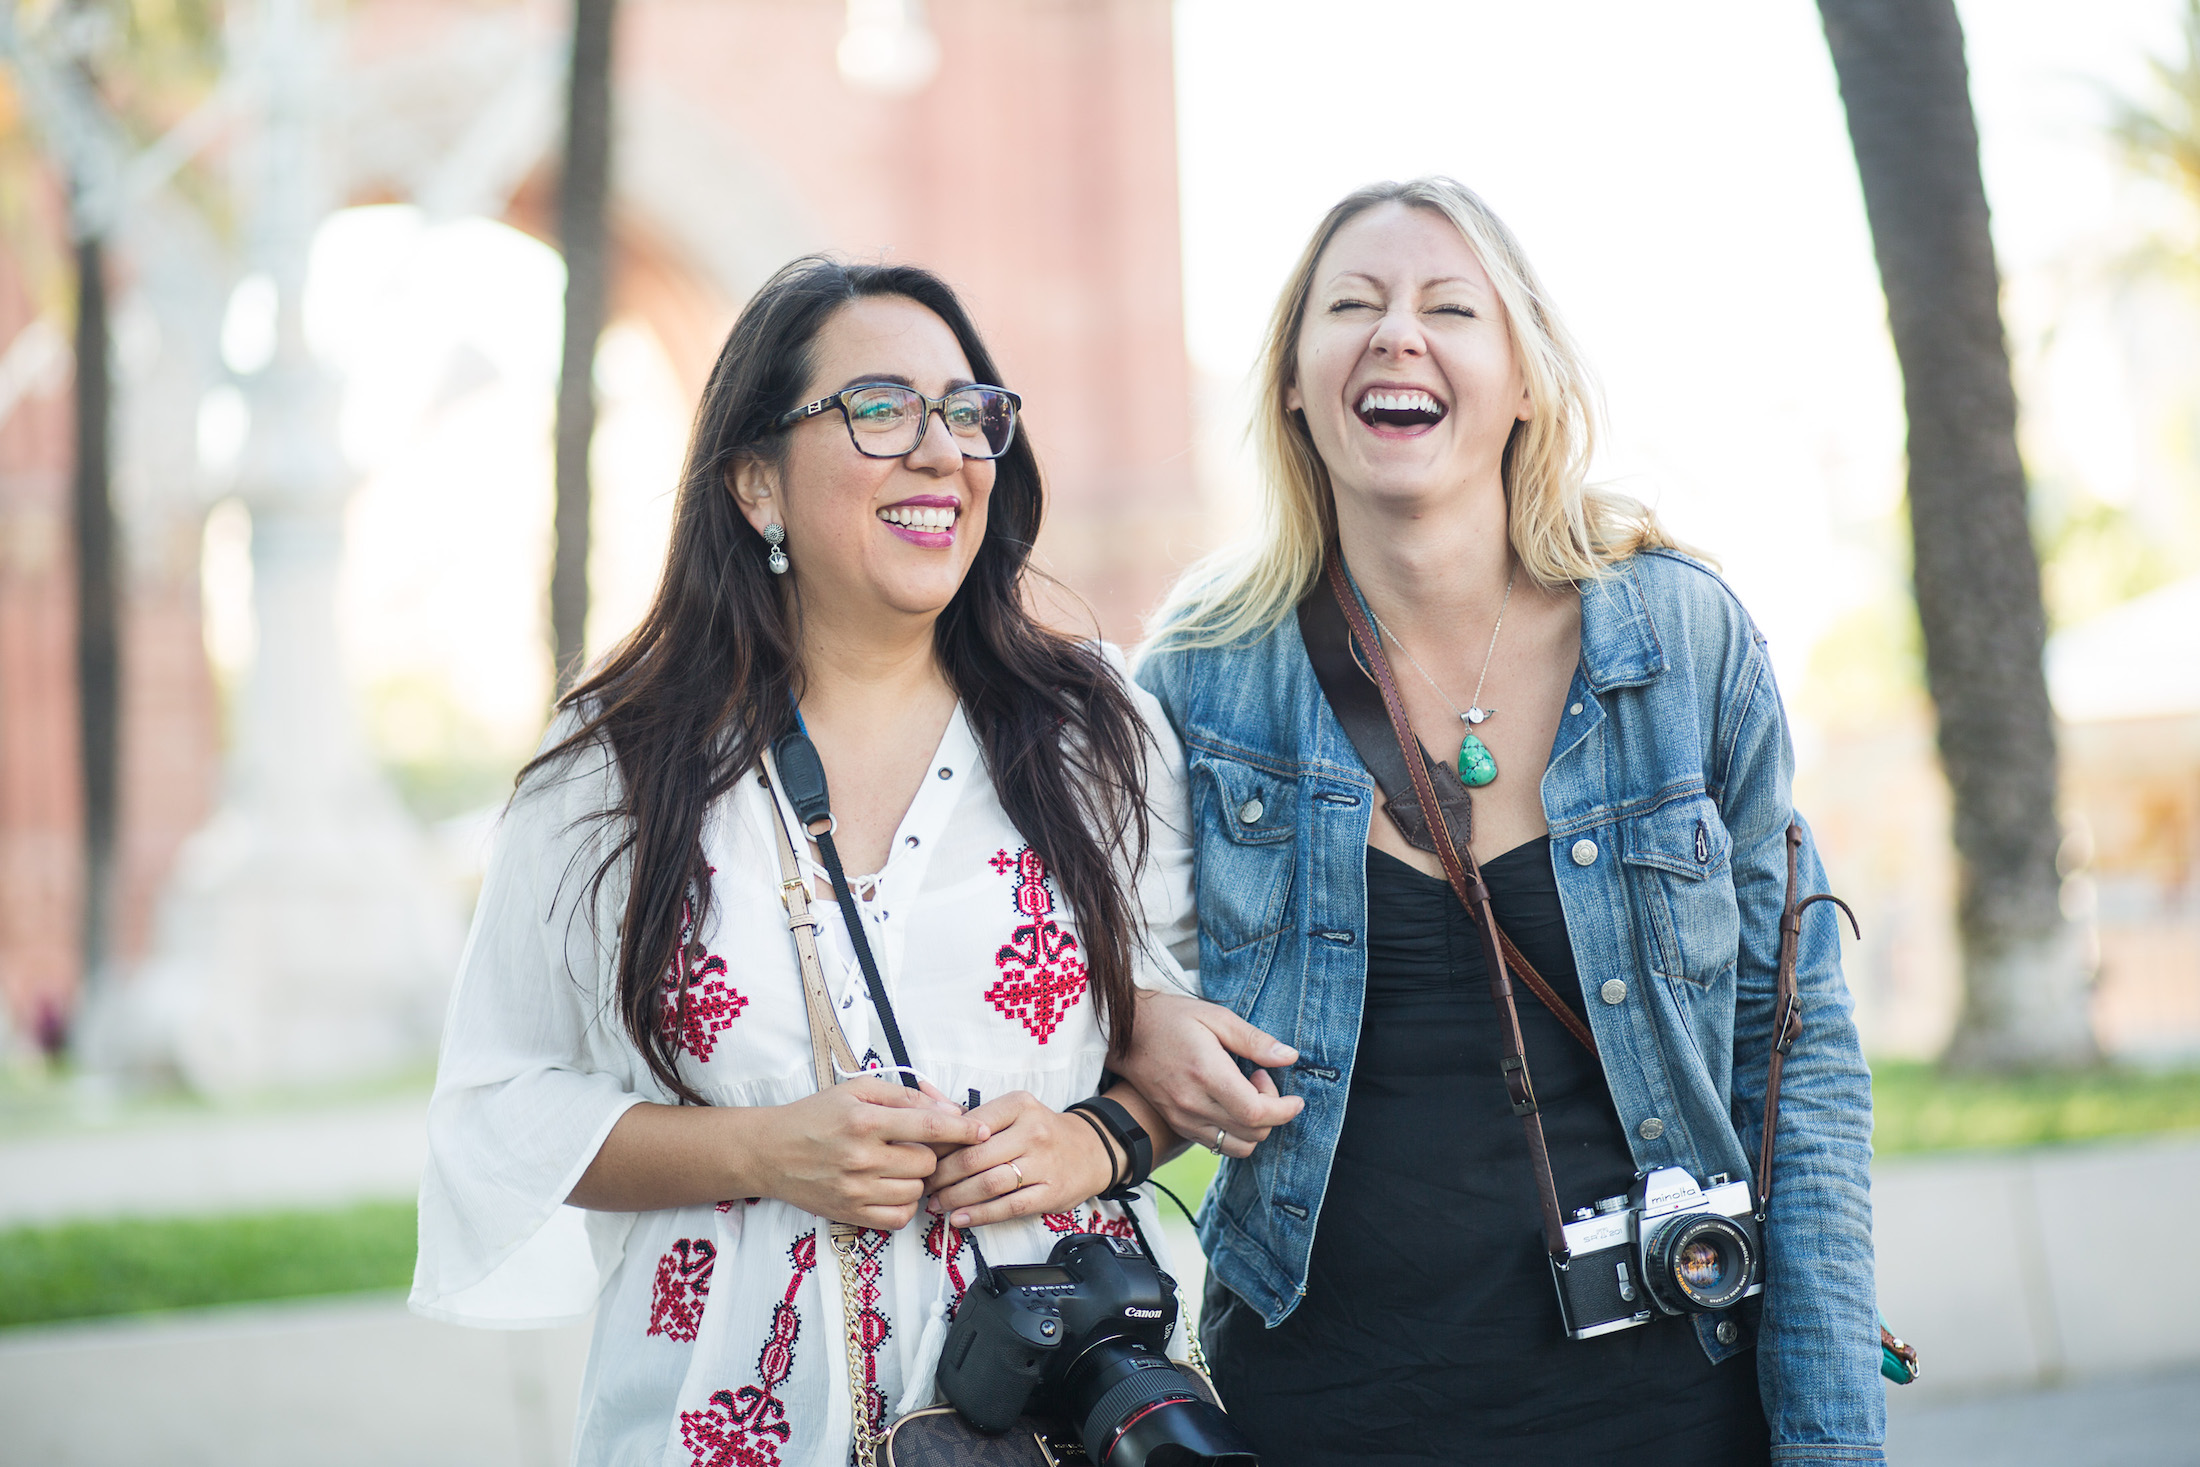 Marian from Lake Como & Erin from Maui enjoying a laugh. Flytographer:  Johnny